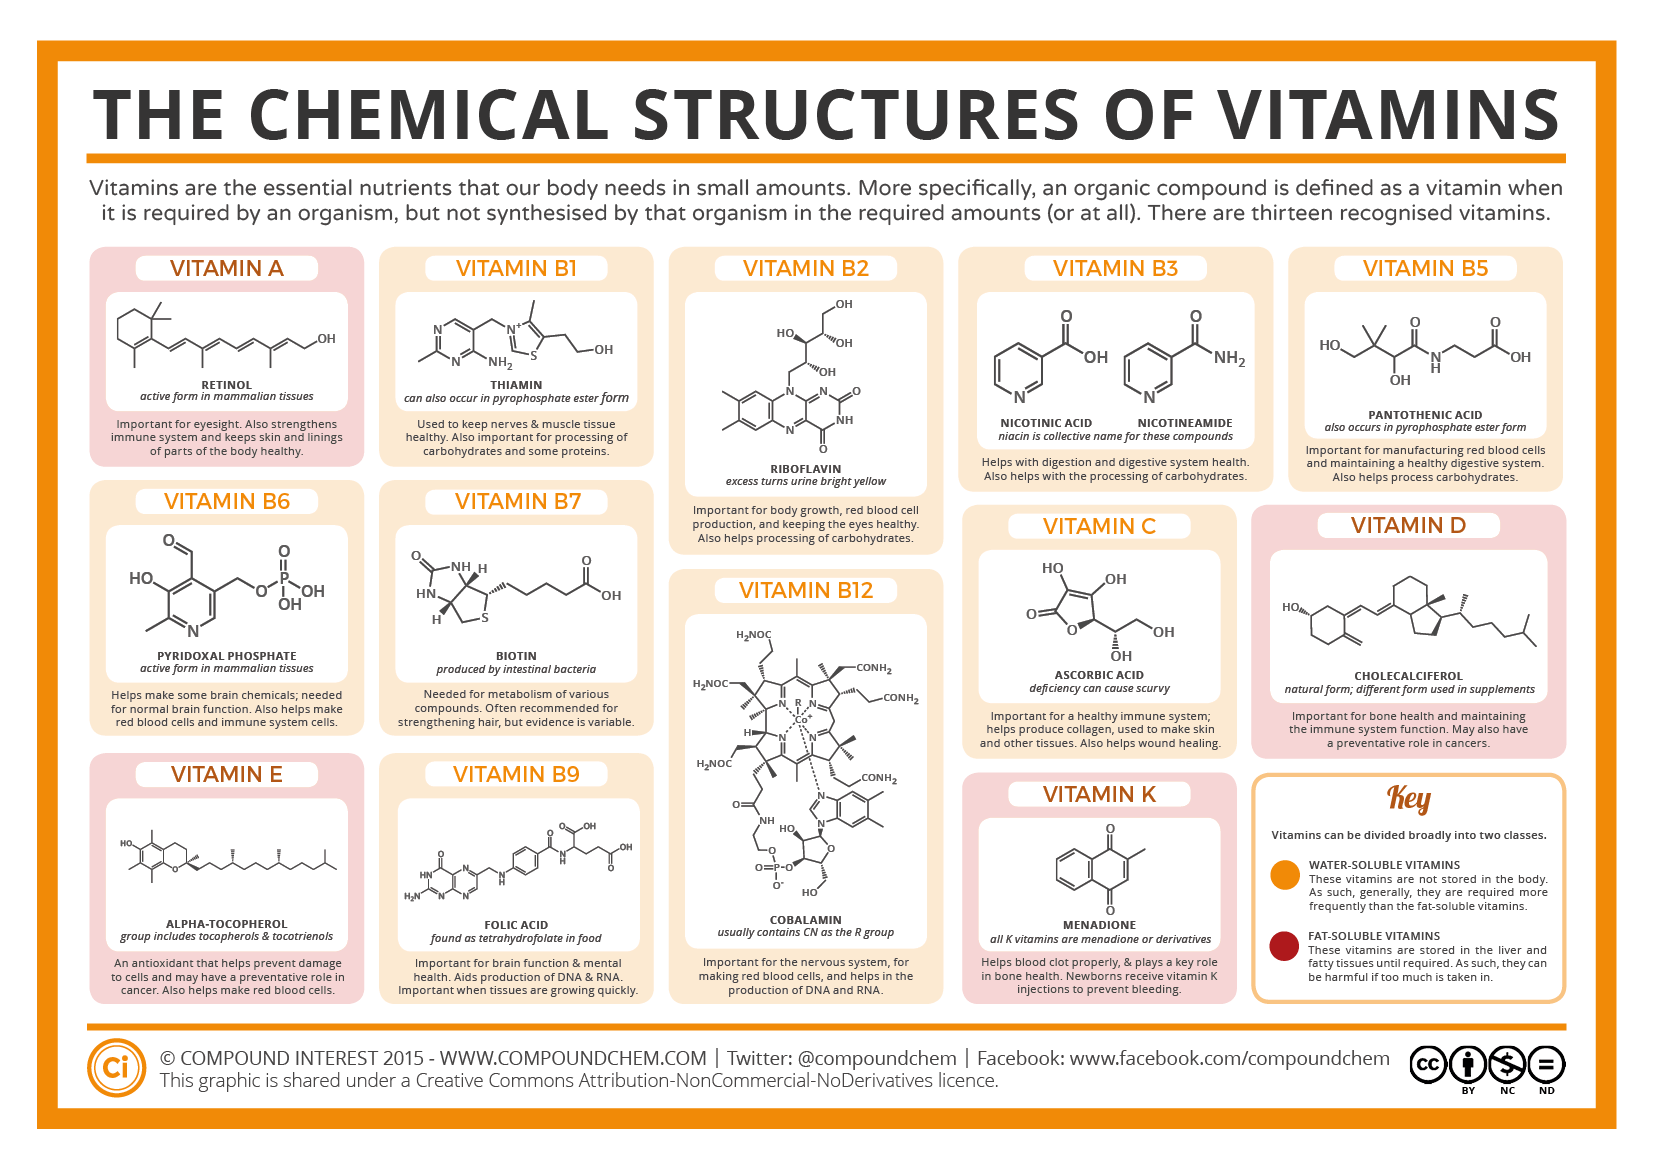 Compound Interest - The Chemical Structures of Vitamins